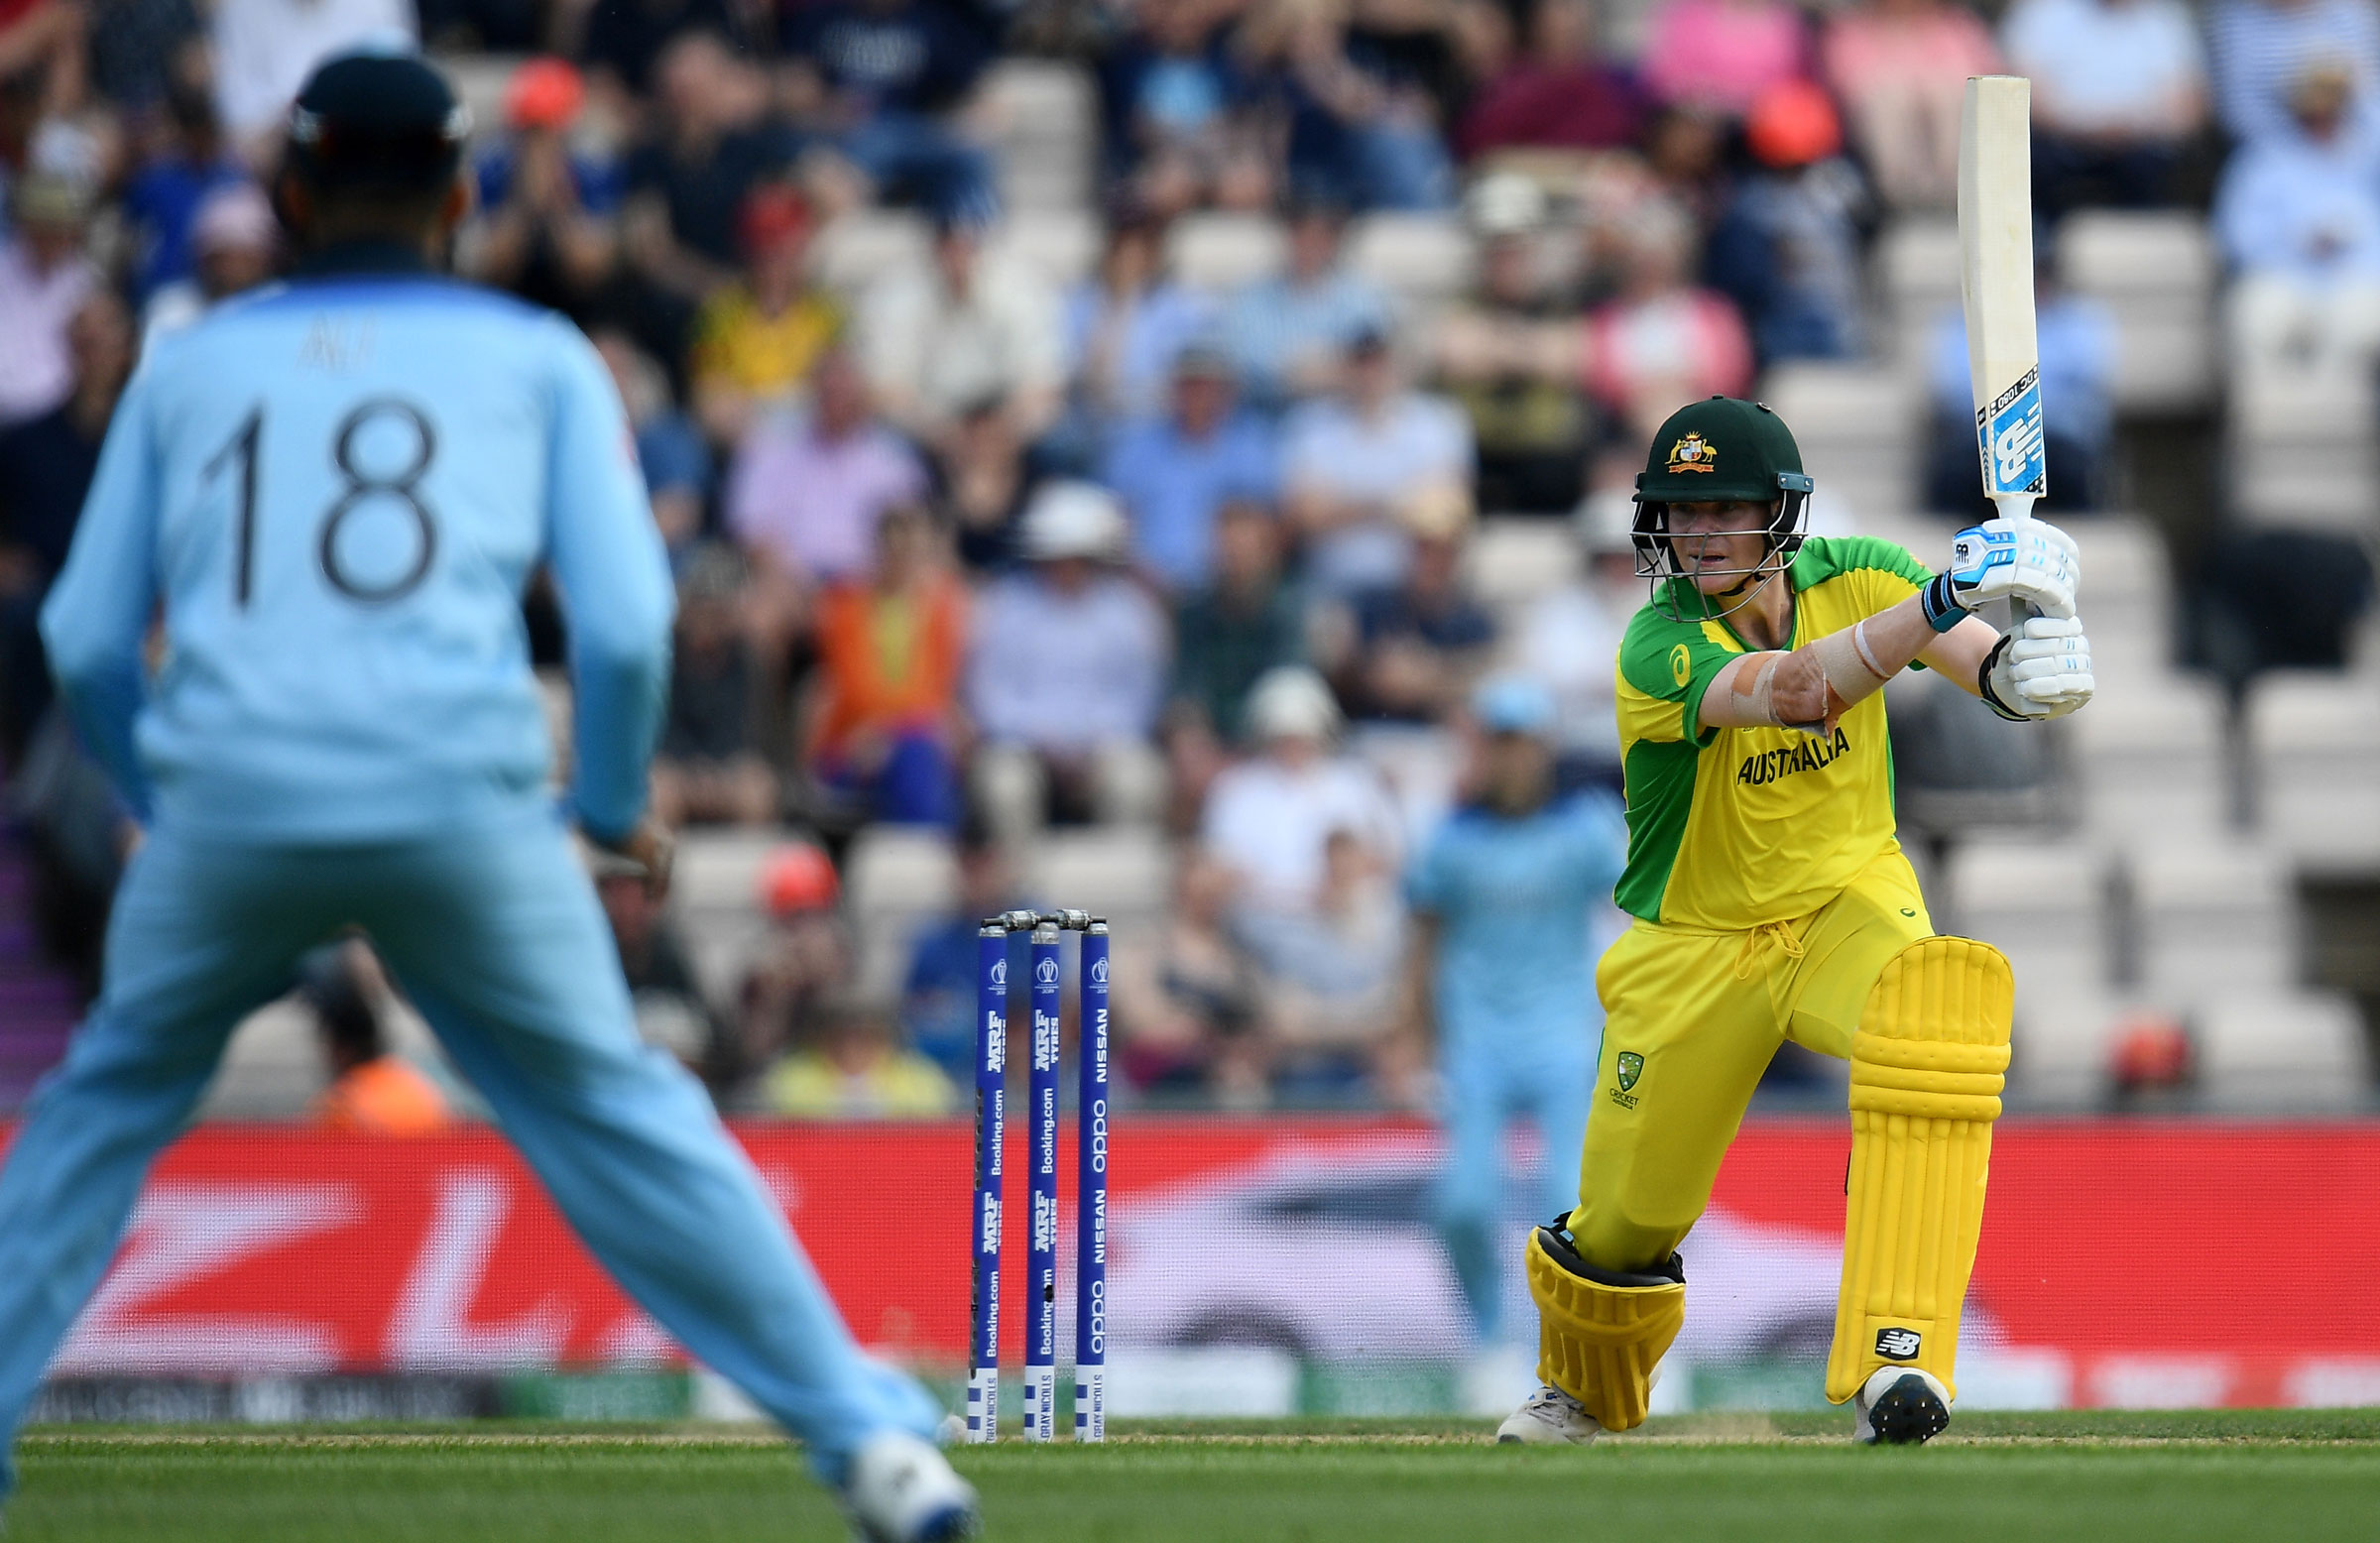 Smith hit eight fours and three sixes // Getty